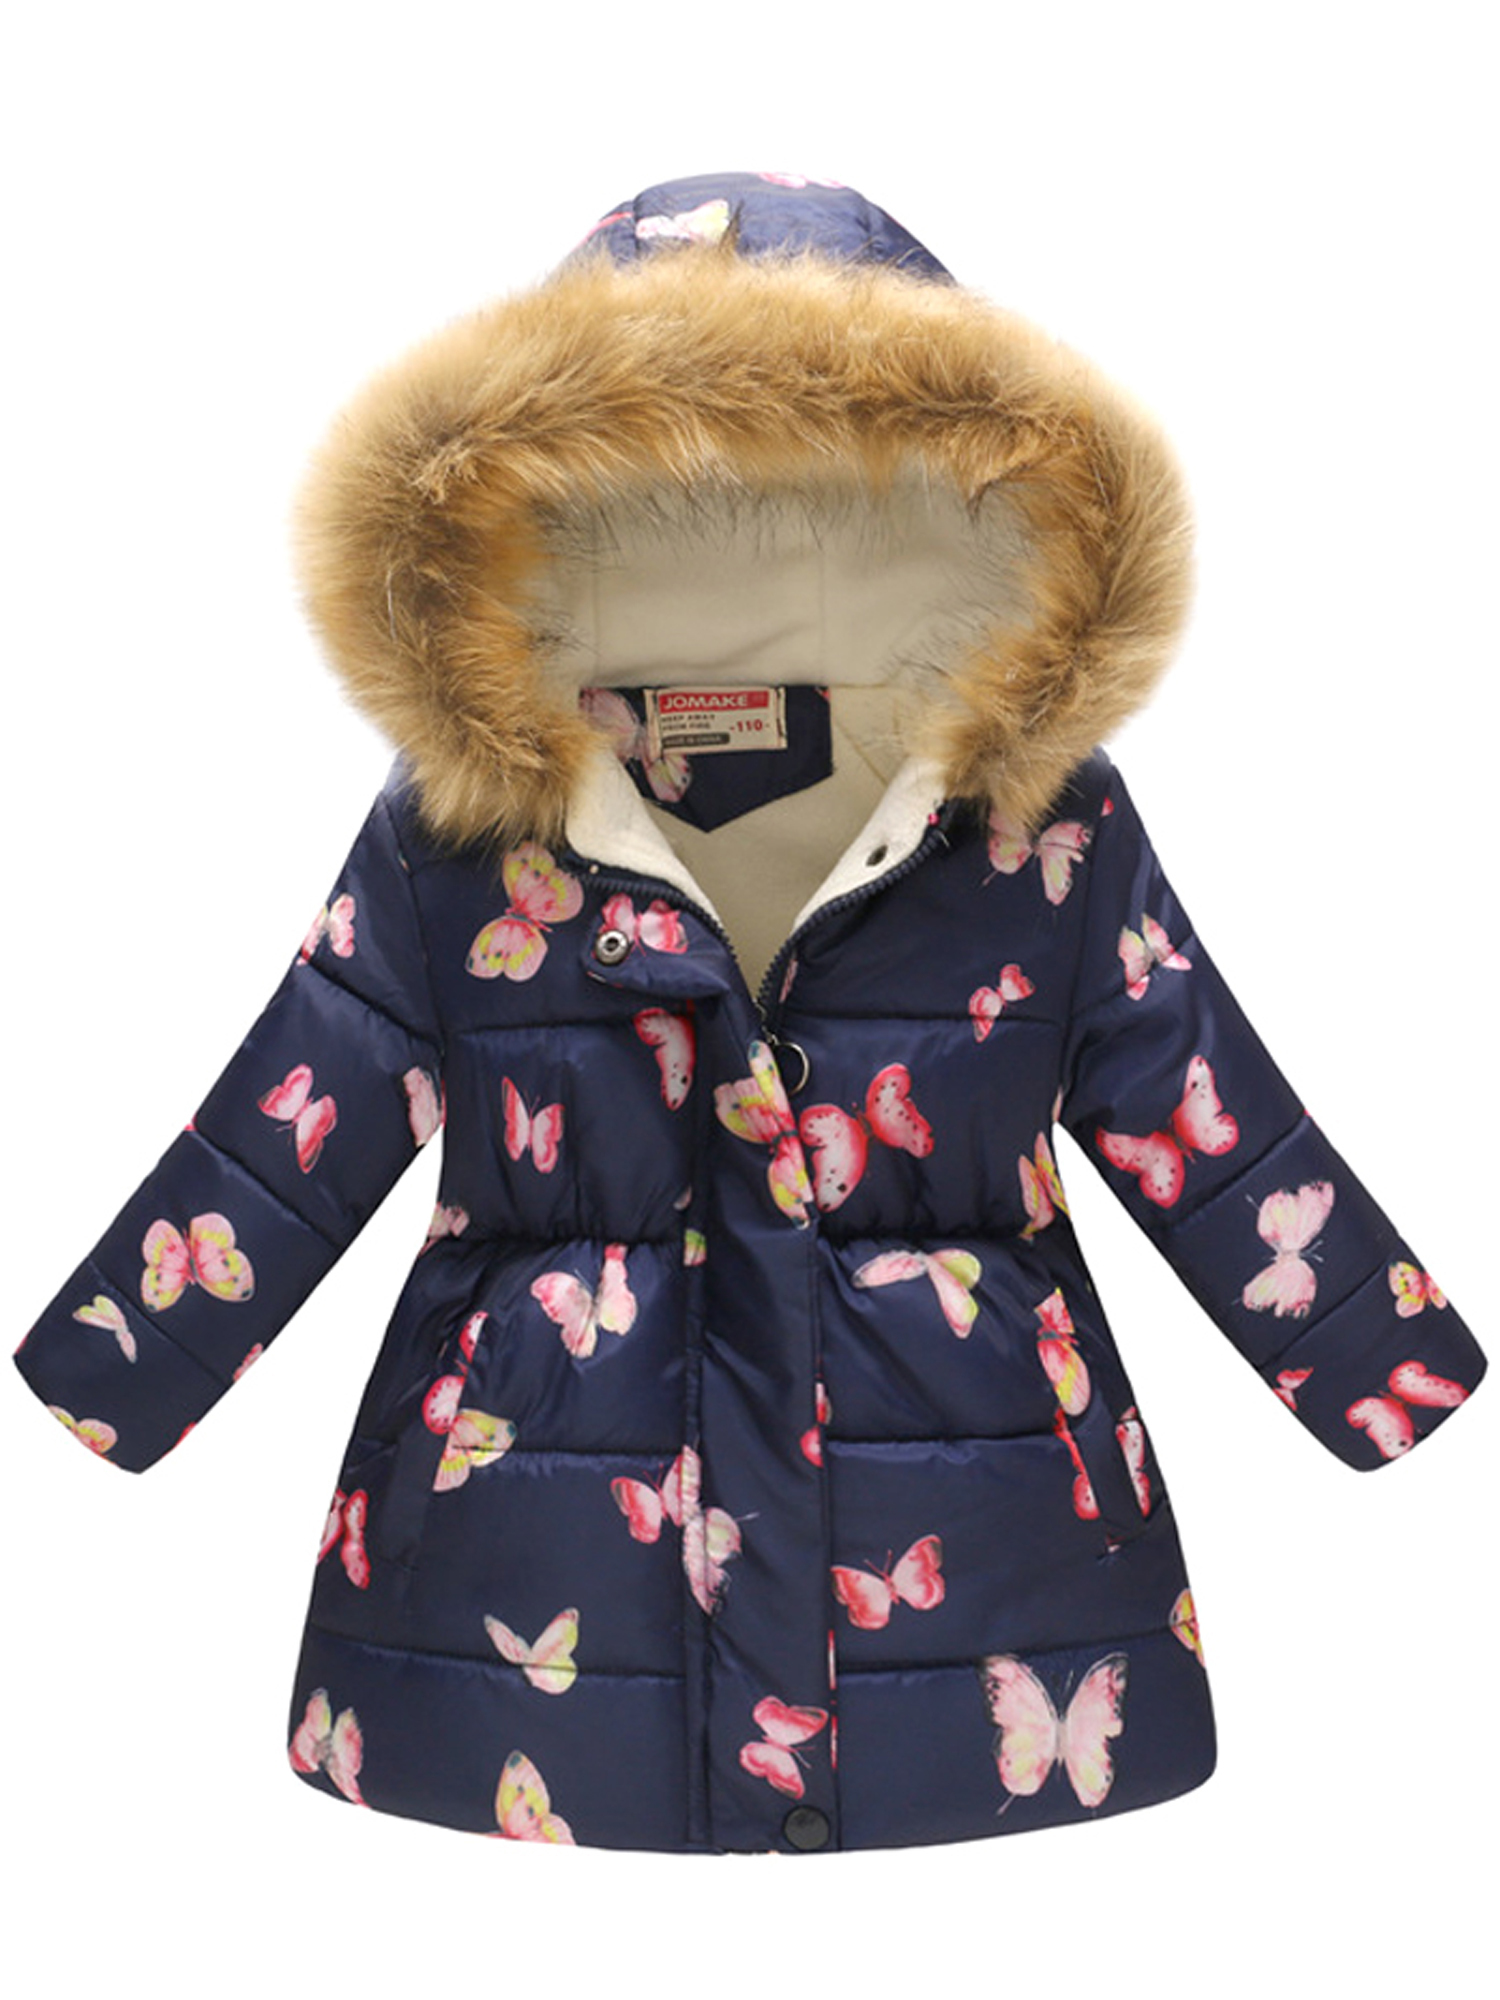 WOOSEN Winter Down Coats for Kids Sparkles Colorful Baby Boys Girls Light Weight Puffer Padded Jacket Bear Hoods Infant Outerwear 01-rose Red 18-24 Months